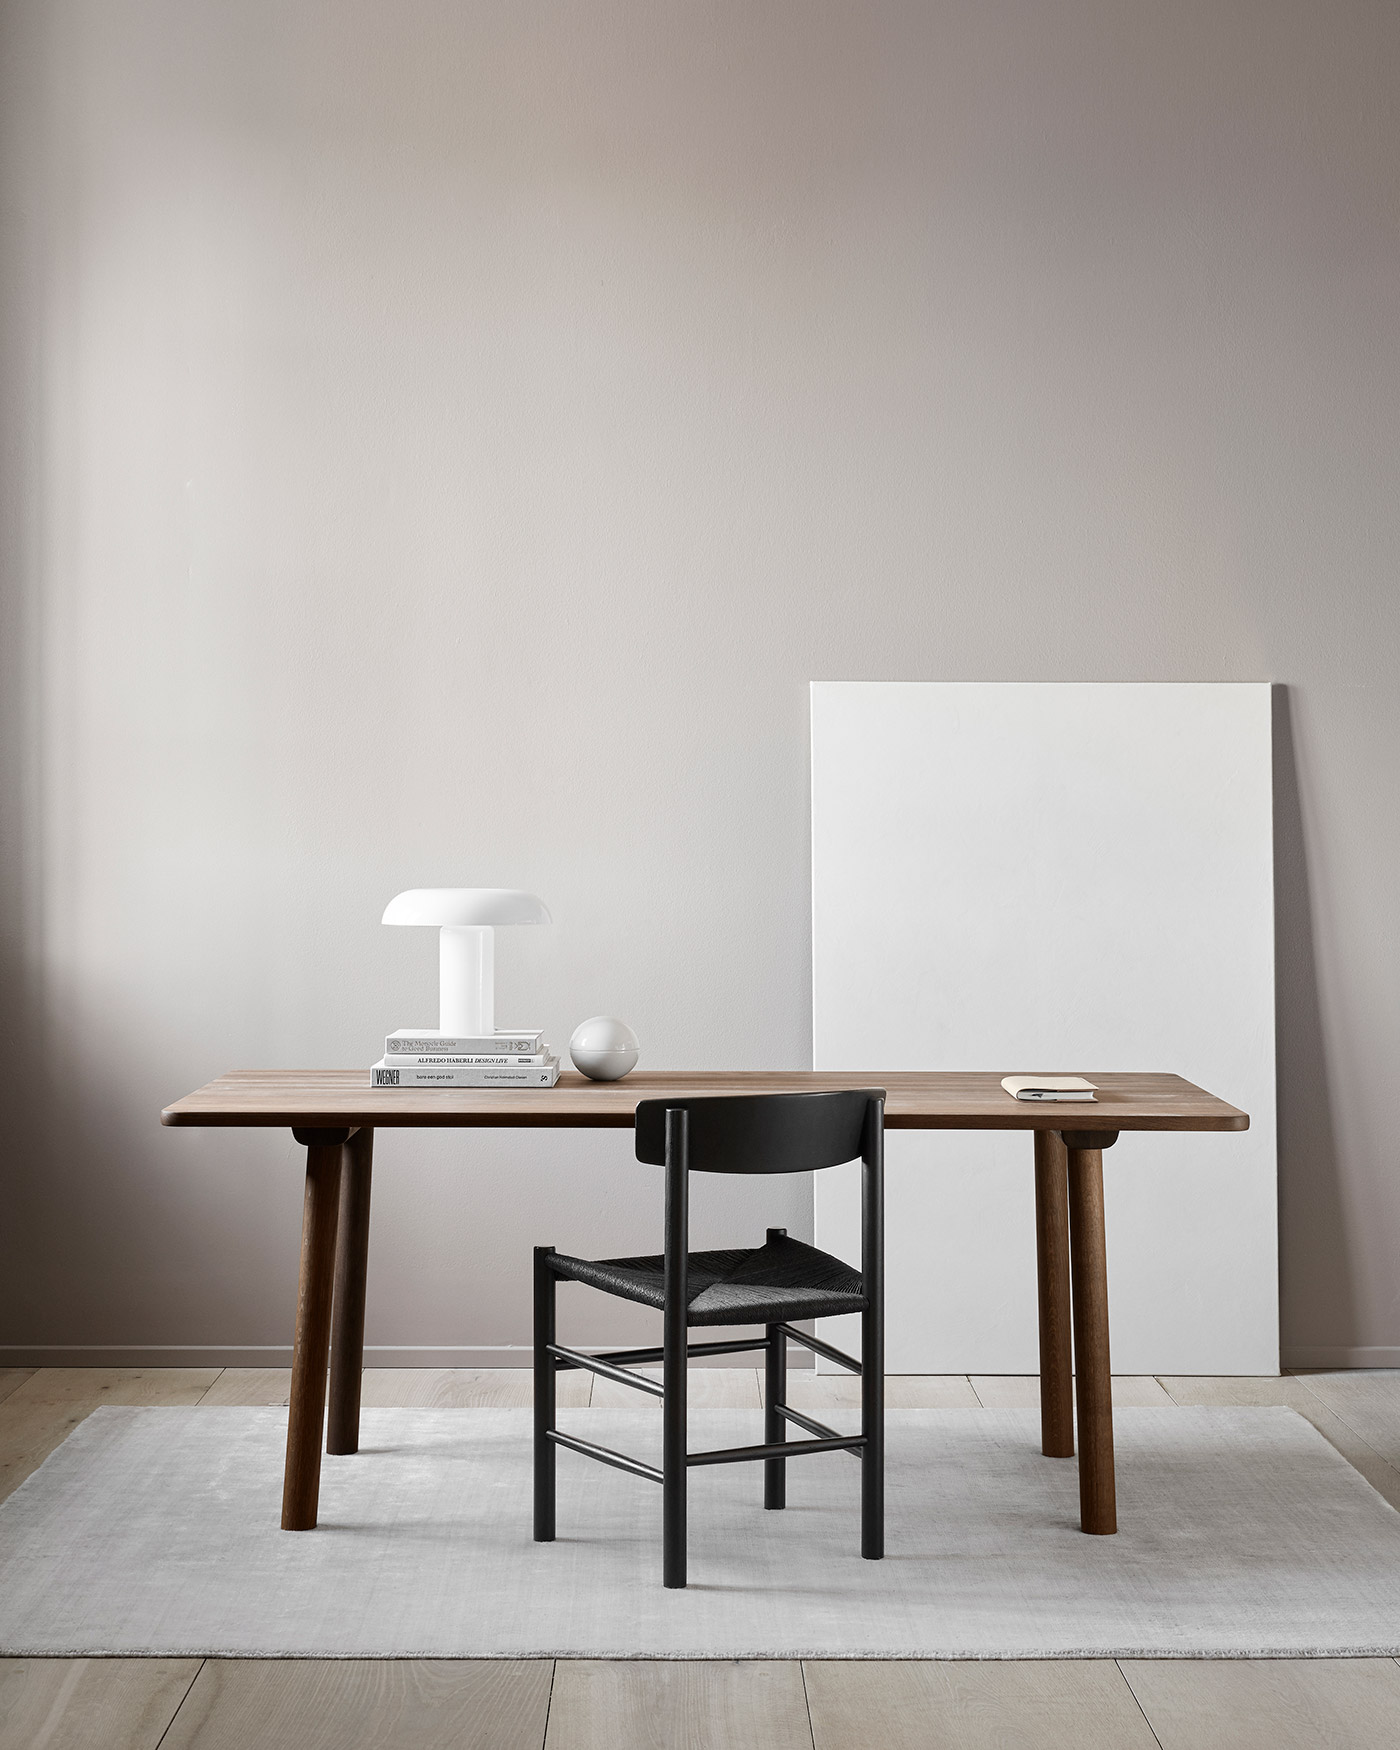 Mogensen J39 chair in black, Taro table in smoked oak by Fredericia